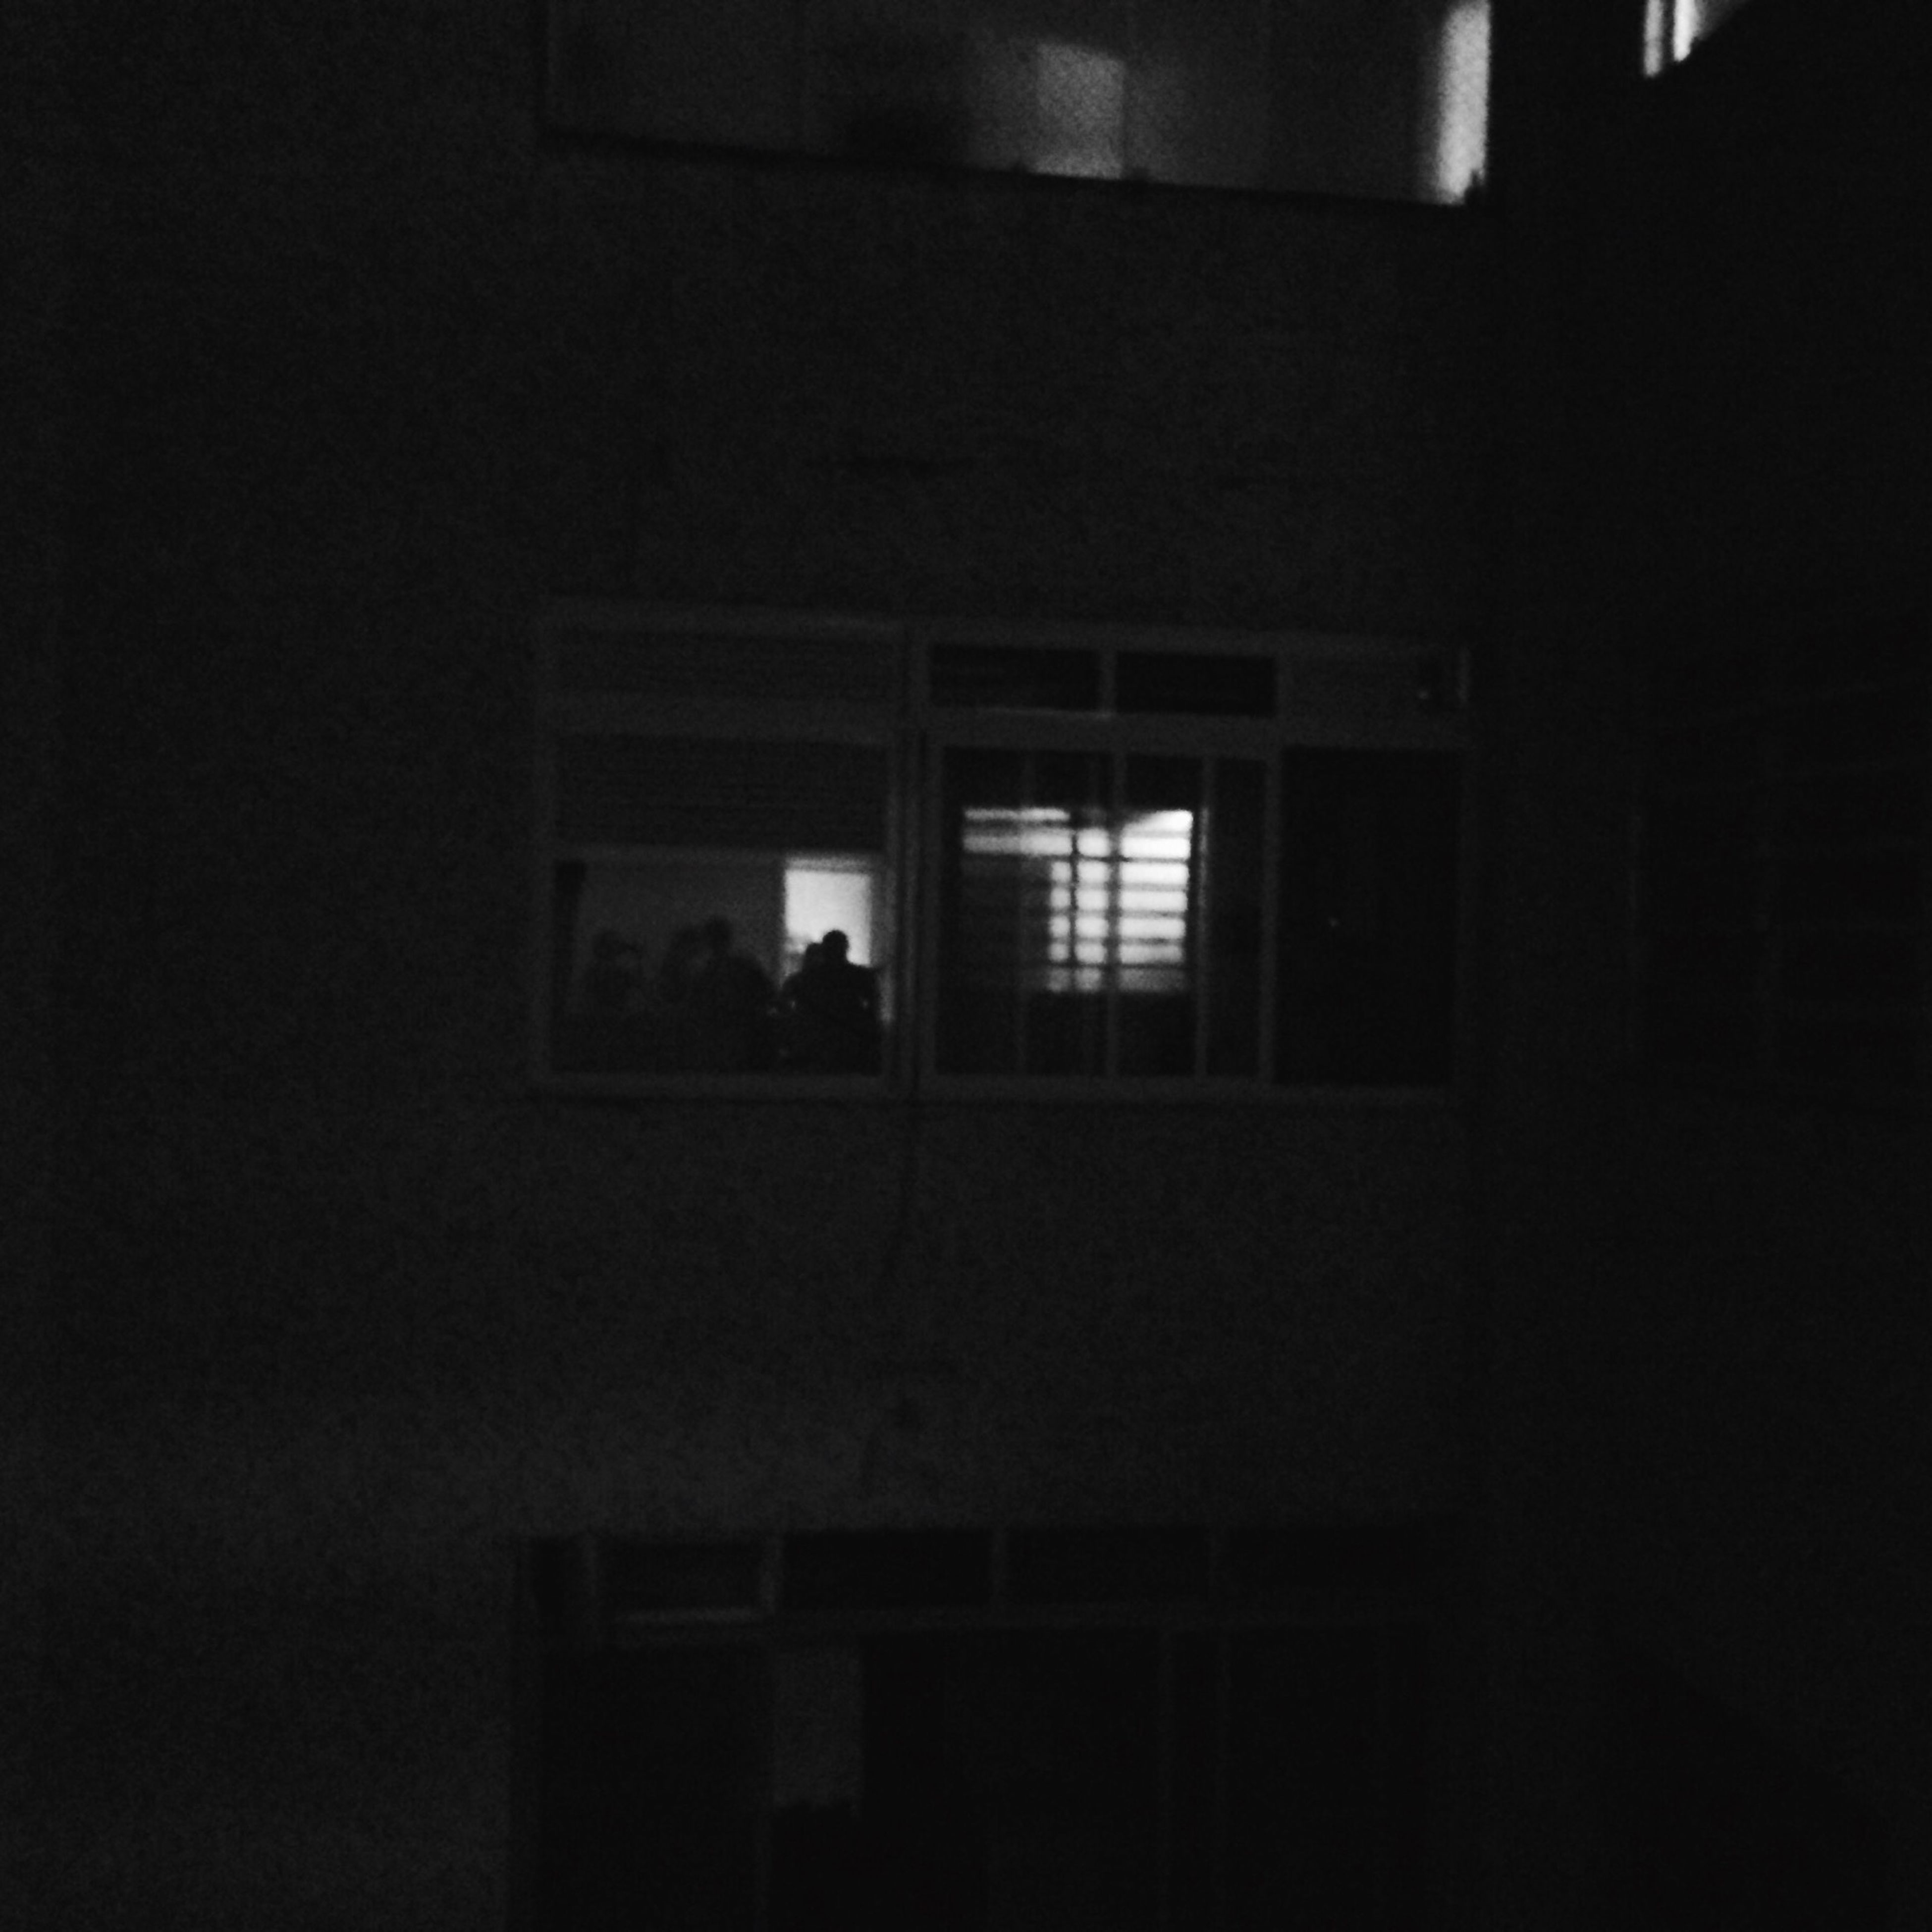 window, architecture, indoors, built structure, building exterior, house, dark, residential structure, glass - material, building, residential building, no people, door, day, home interior, transparent, closed, wall - building feature, reflection